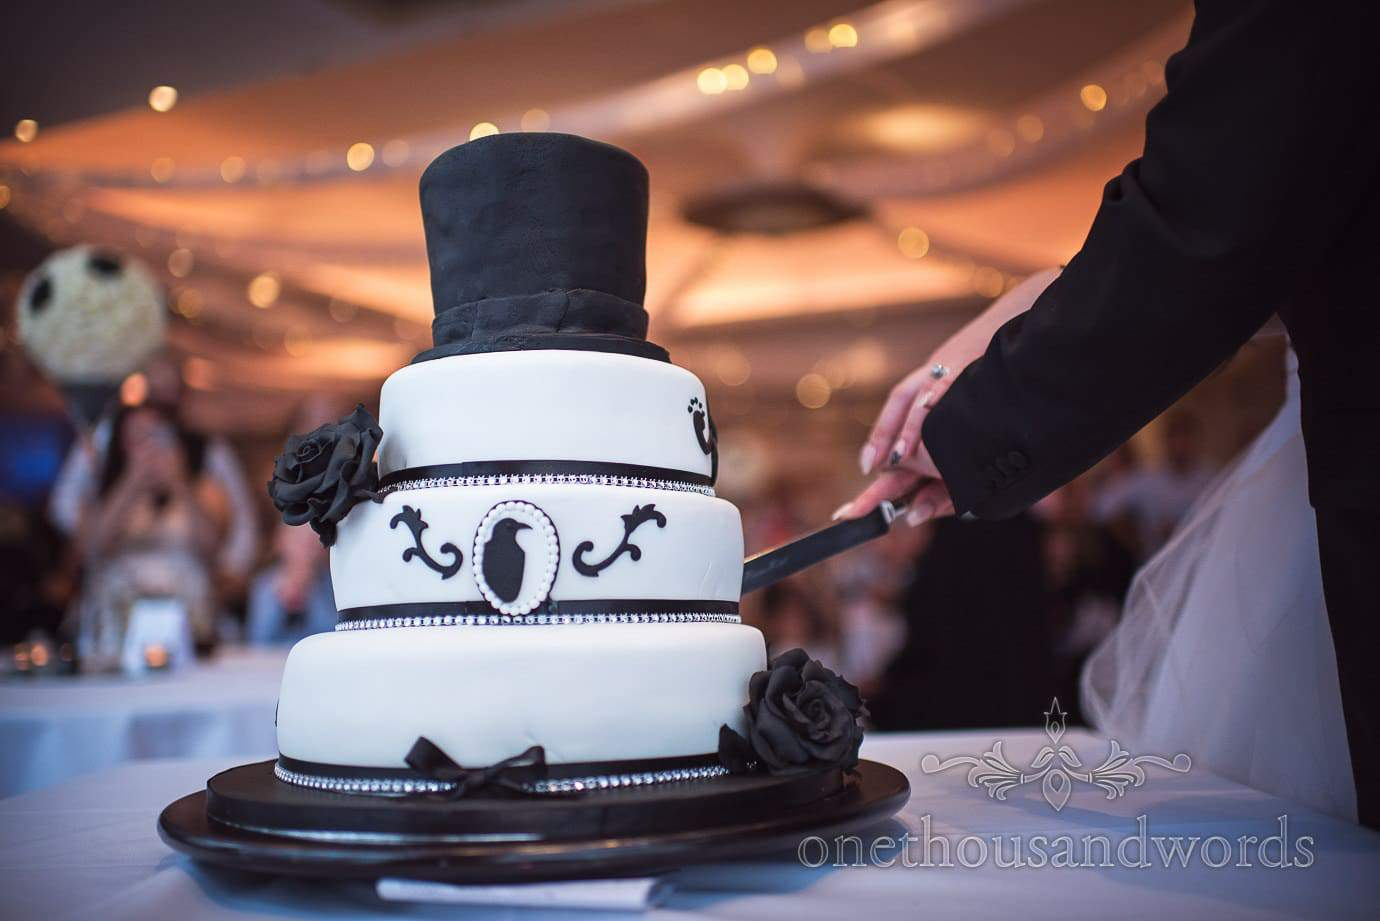 Black and white rock and roll themed wedding cake with black roses and top hat